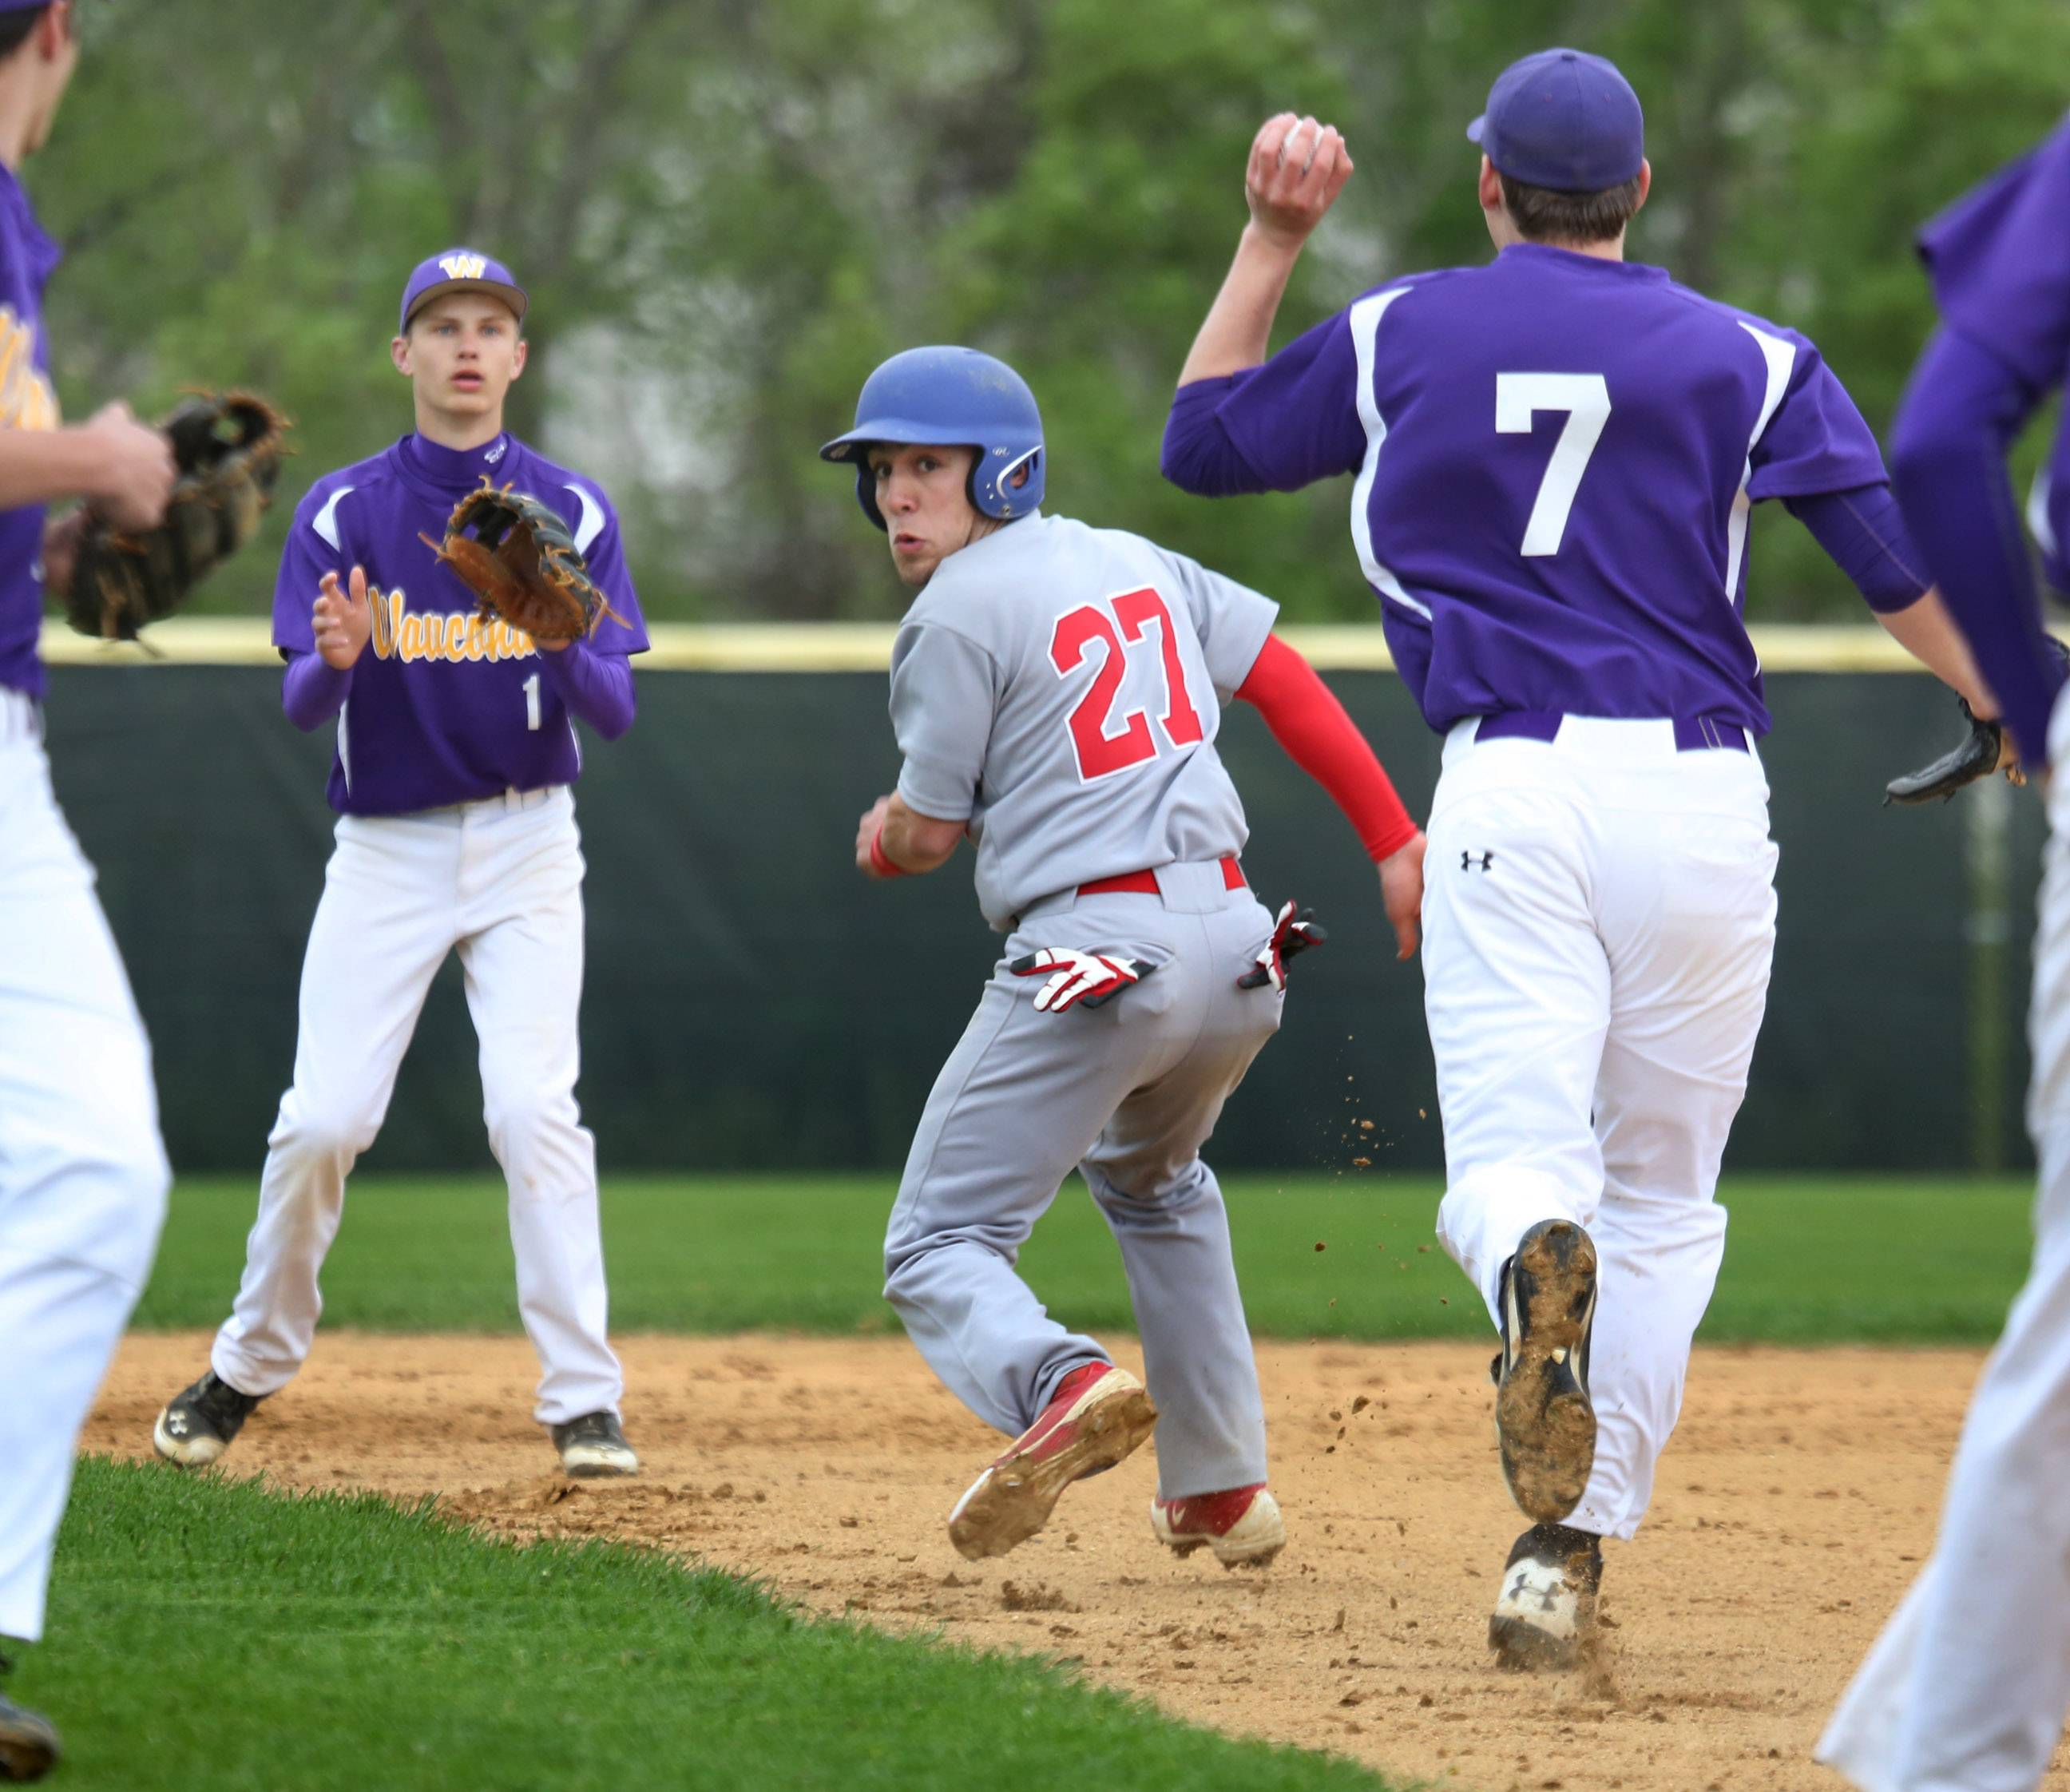 Lakes' Justin Corona gets caught in a rundown between first and second as Wauconda's Collin Shrader, left, and Kyle Harmon chase hm down.